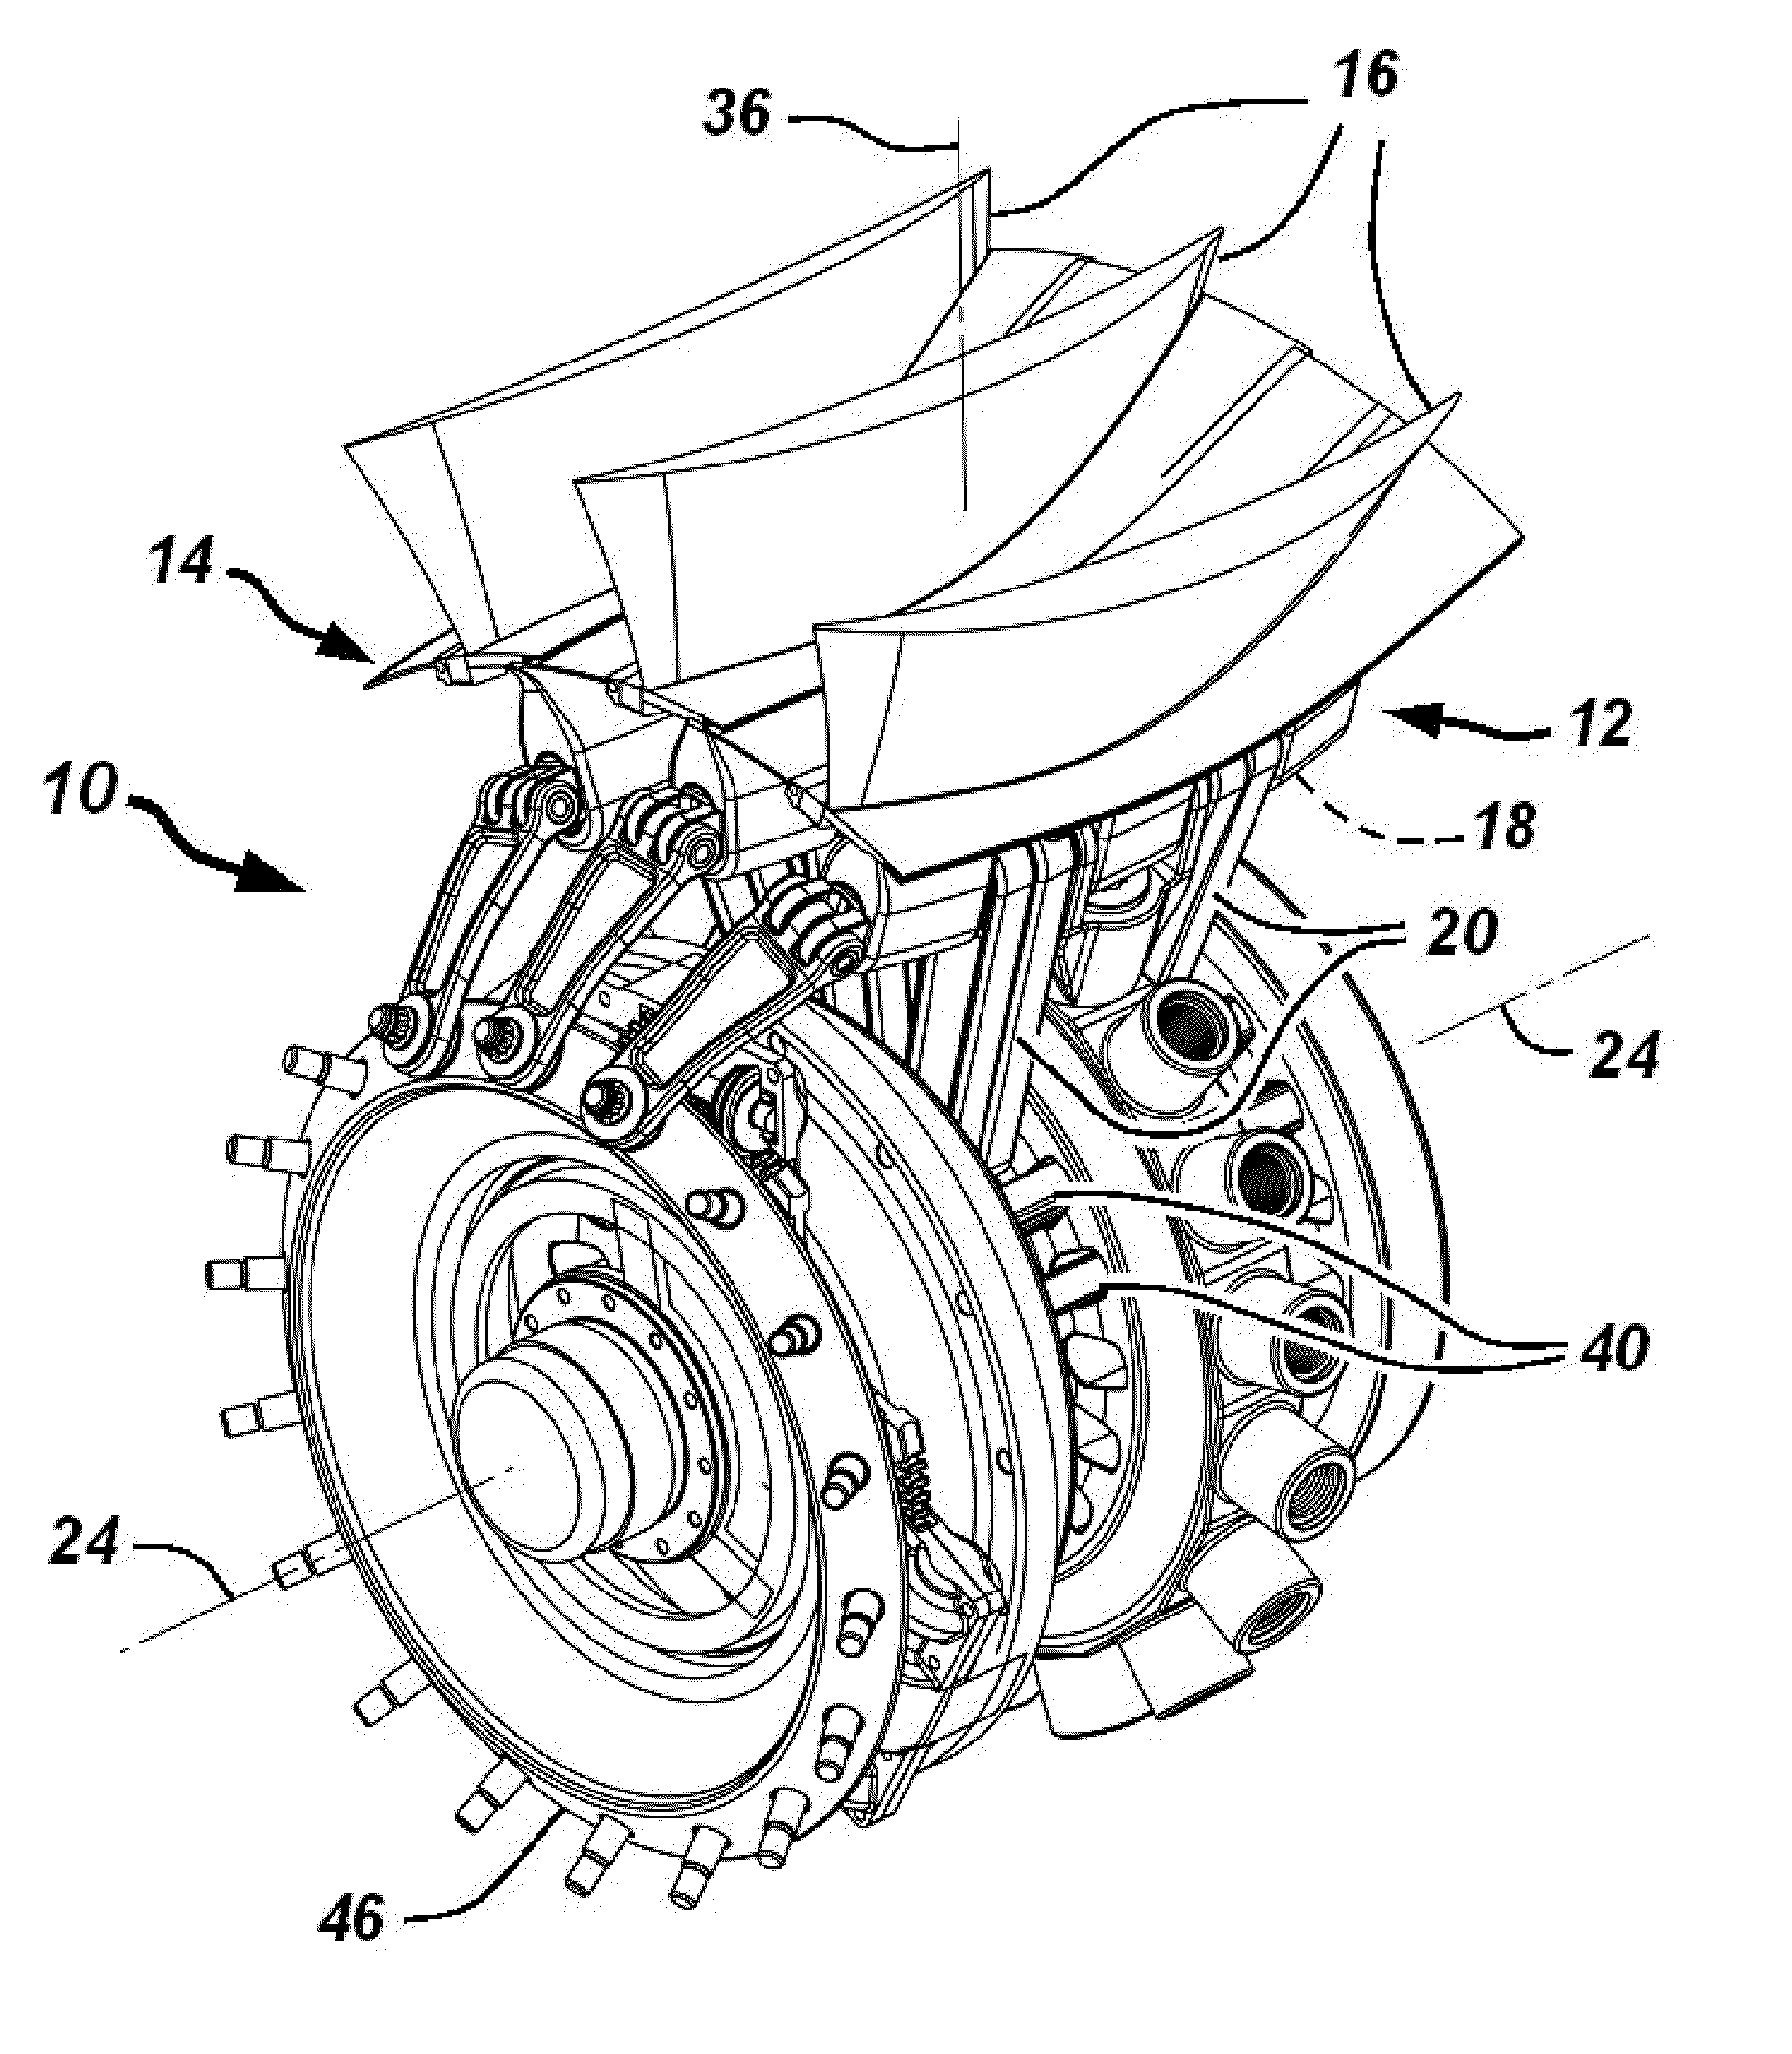 Variable Pitch Fan : Patent us fan blade retention and variable pitch